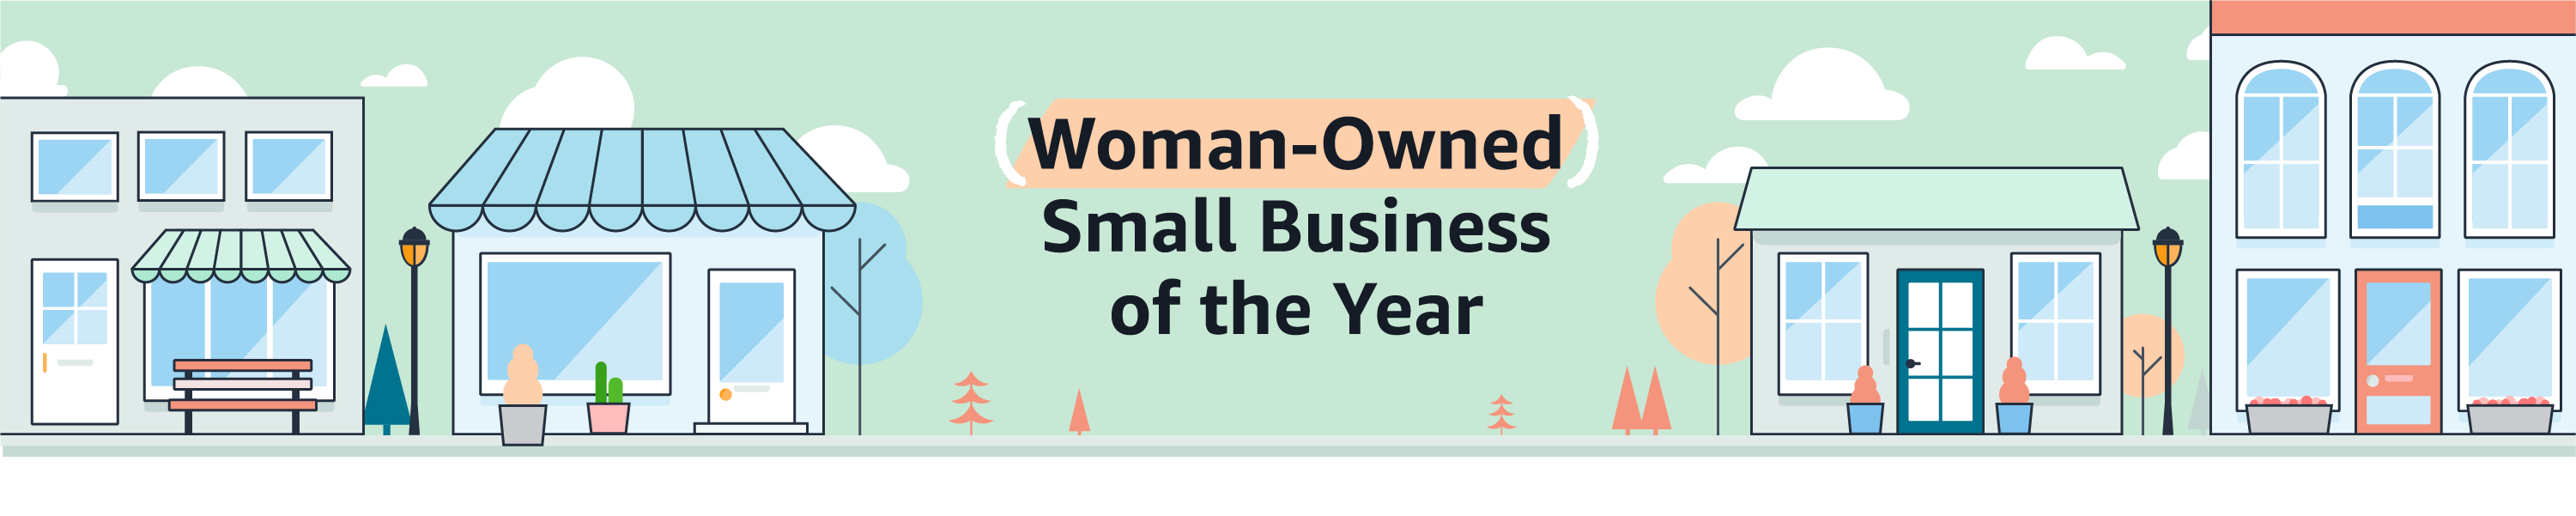 Woman-owned Small Business of the year